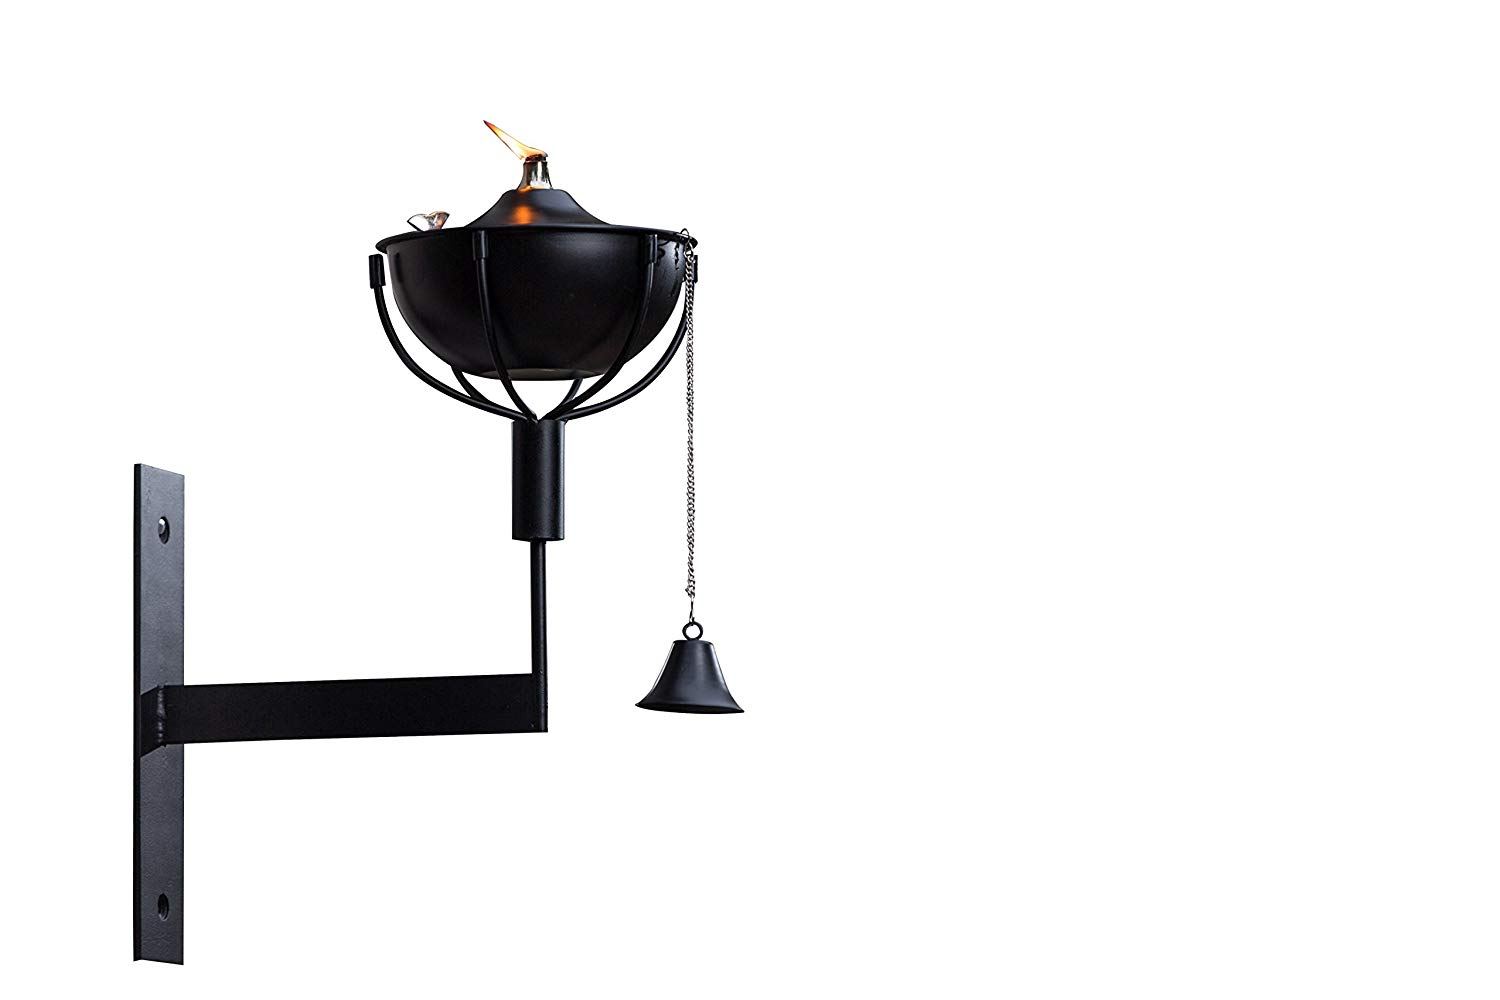 Maui Wall Sconce Landscape torch, Tabletop torch, Deck Mount, Wall Mount, Deck Sconce, Oil Lamp, Lamp, (Smooth Black)